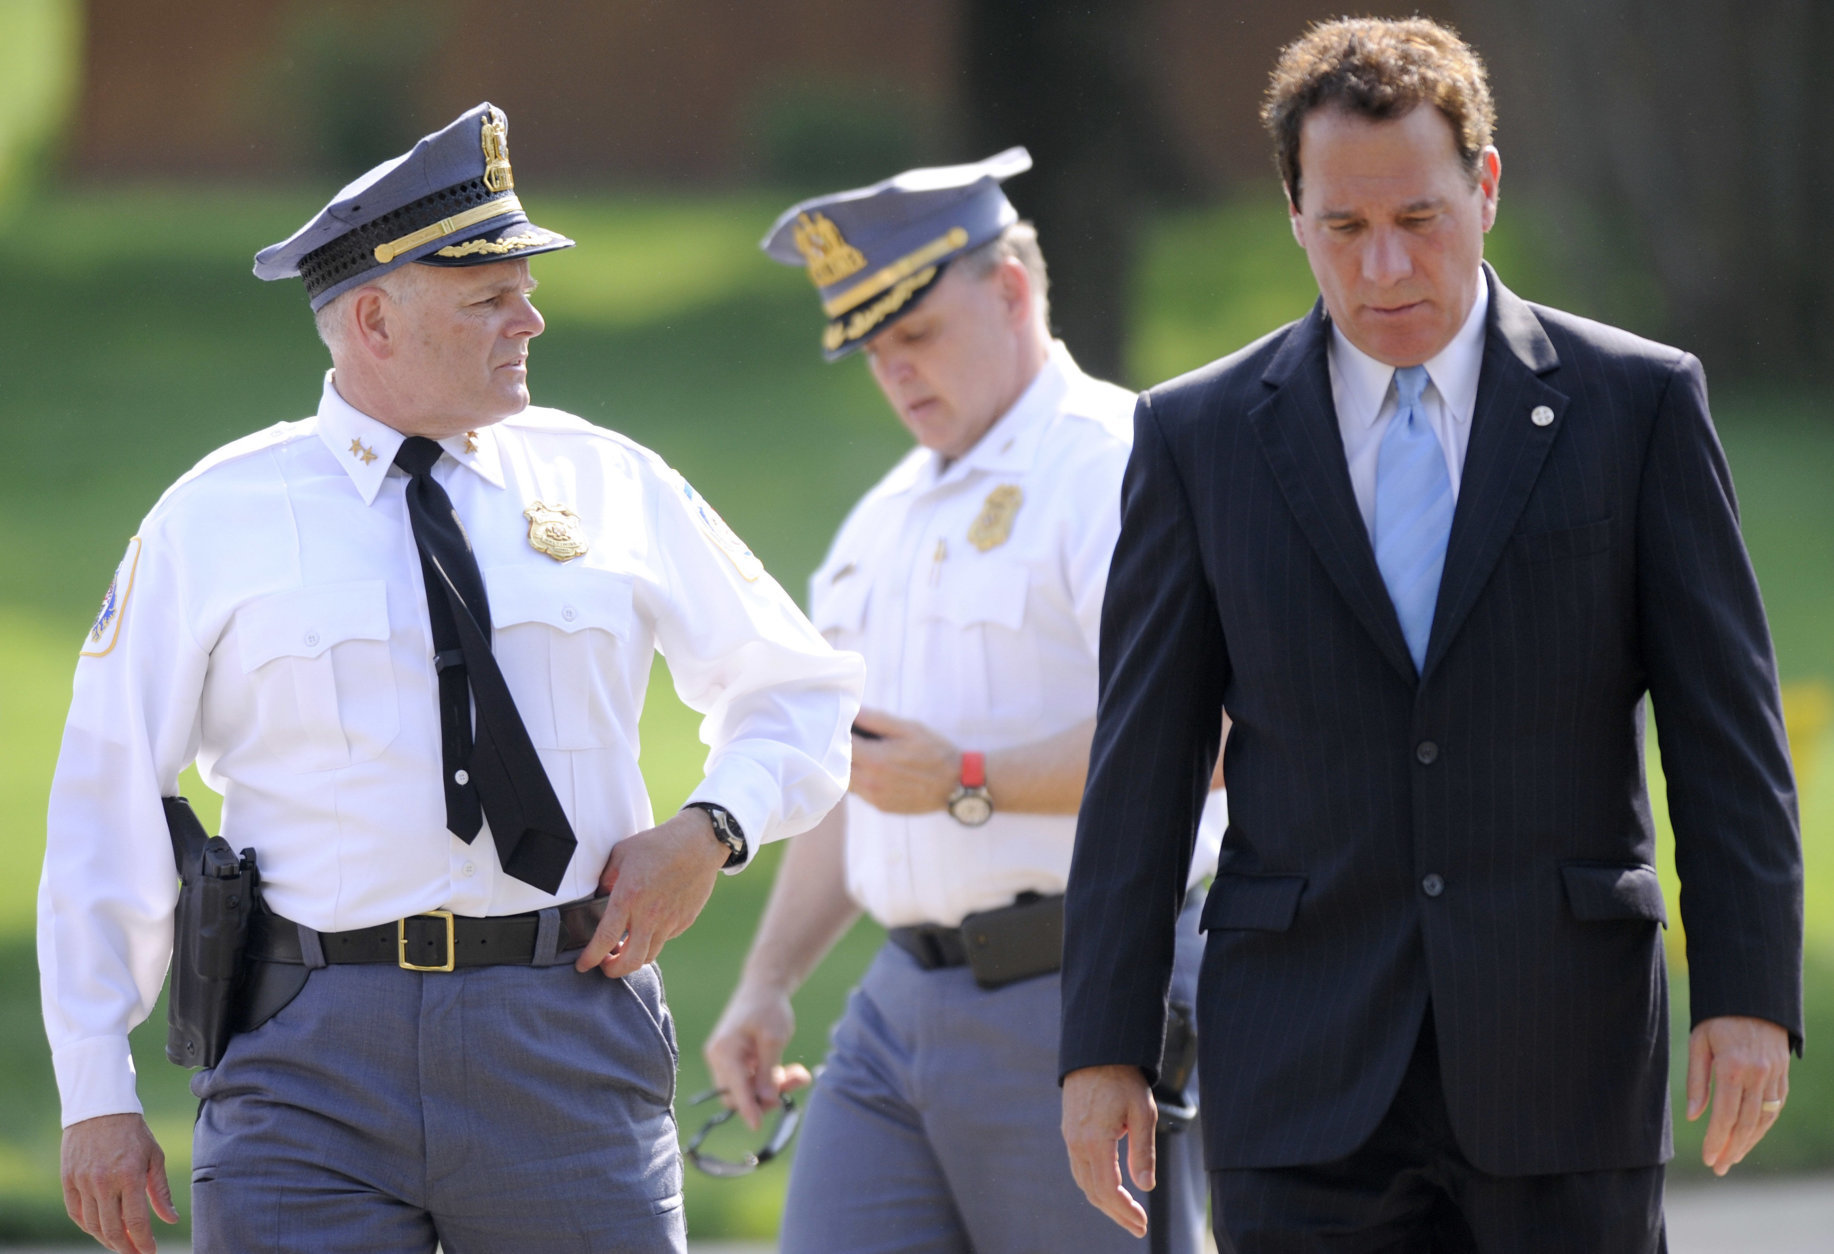 From left, Baltimore County Police Chief Jim Johnson, Baltimore County Police Col. Peter Evans and Baltimore County Executive Kevin Kamenetz arrive for a news conference outside WMAR-TV Tuesday, May 13, 2014, in Towson, Md. The officials announced that a man was taken into custody after allegedly crashing a vehicle into the television station. (AP Photo/Steve Ruark)